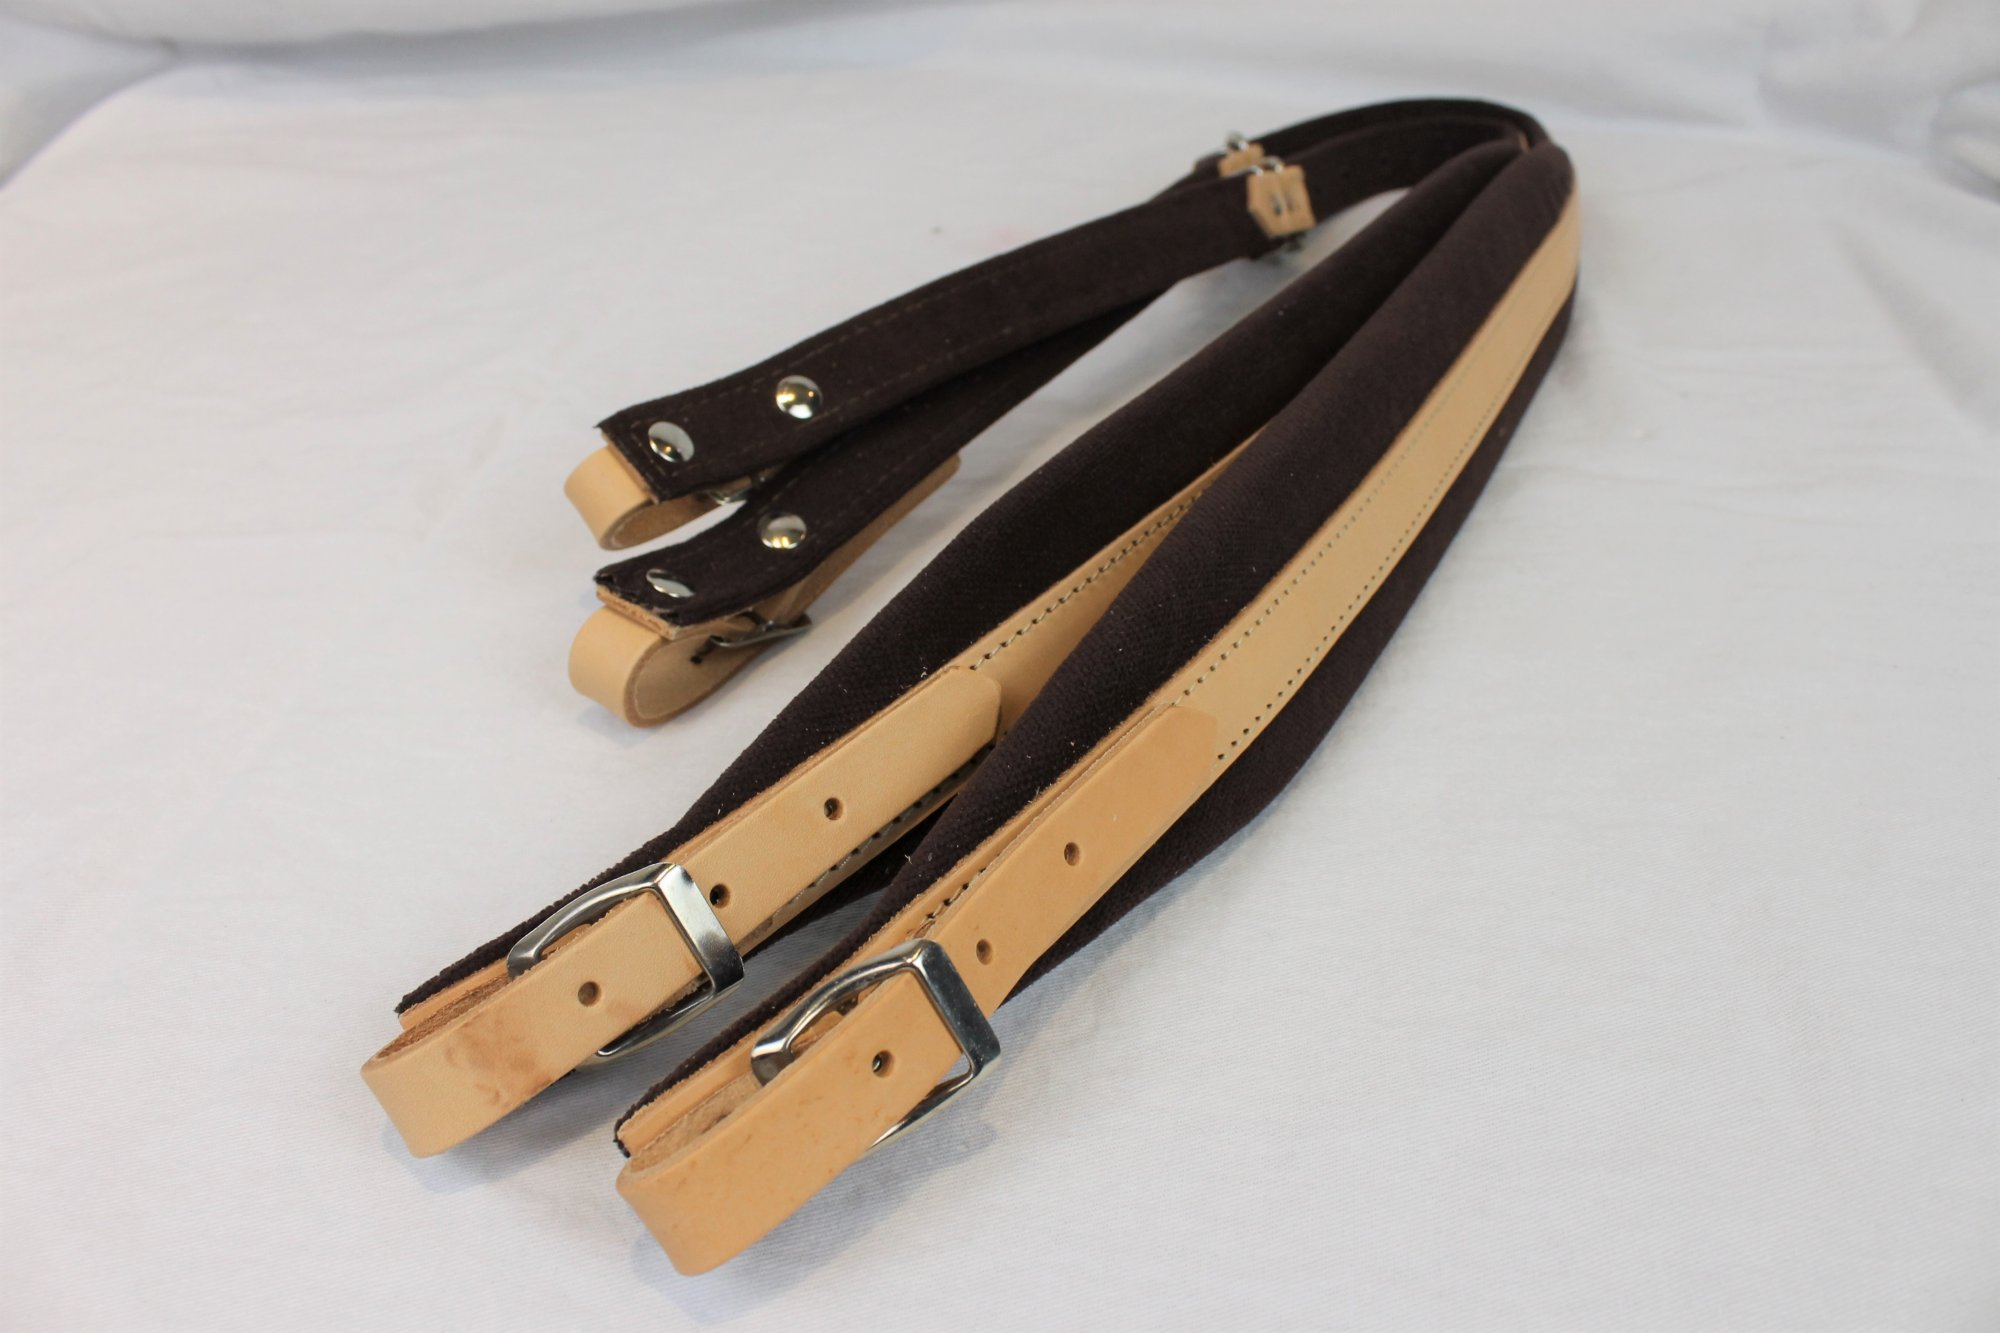 New Tan Leather Brown Velour Fuselli Accordion Shoulder Straps Width (6cm / 2.4in) Length (85~105cm / 33.5~41.3in)